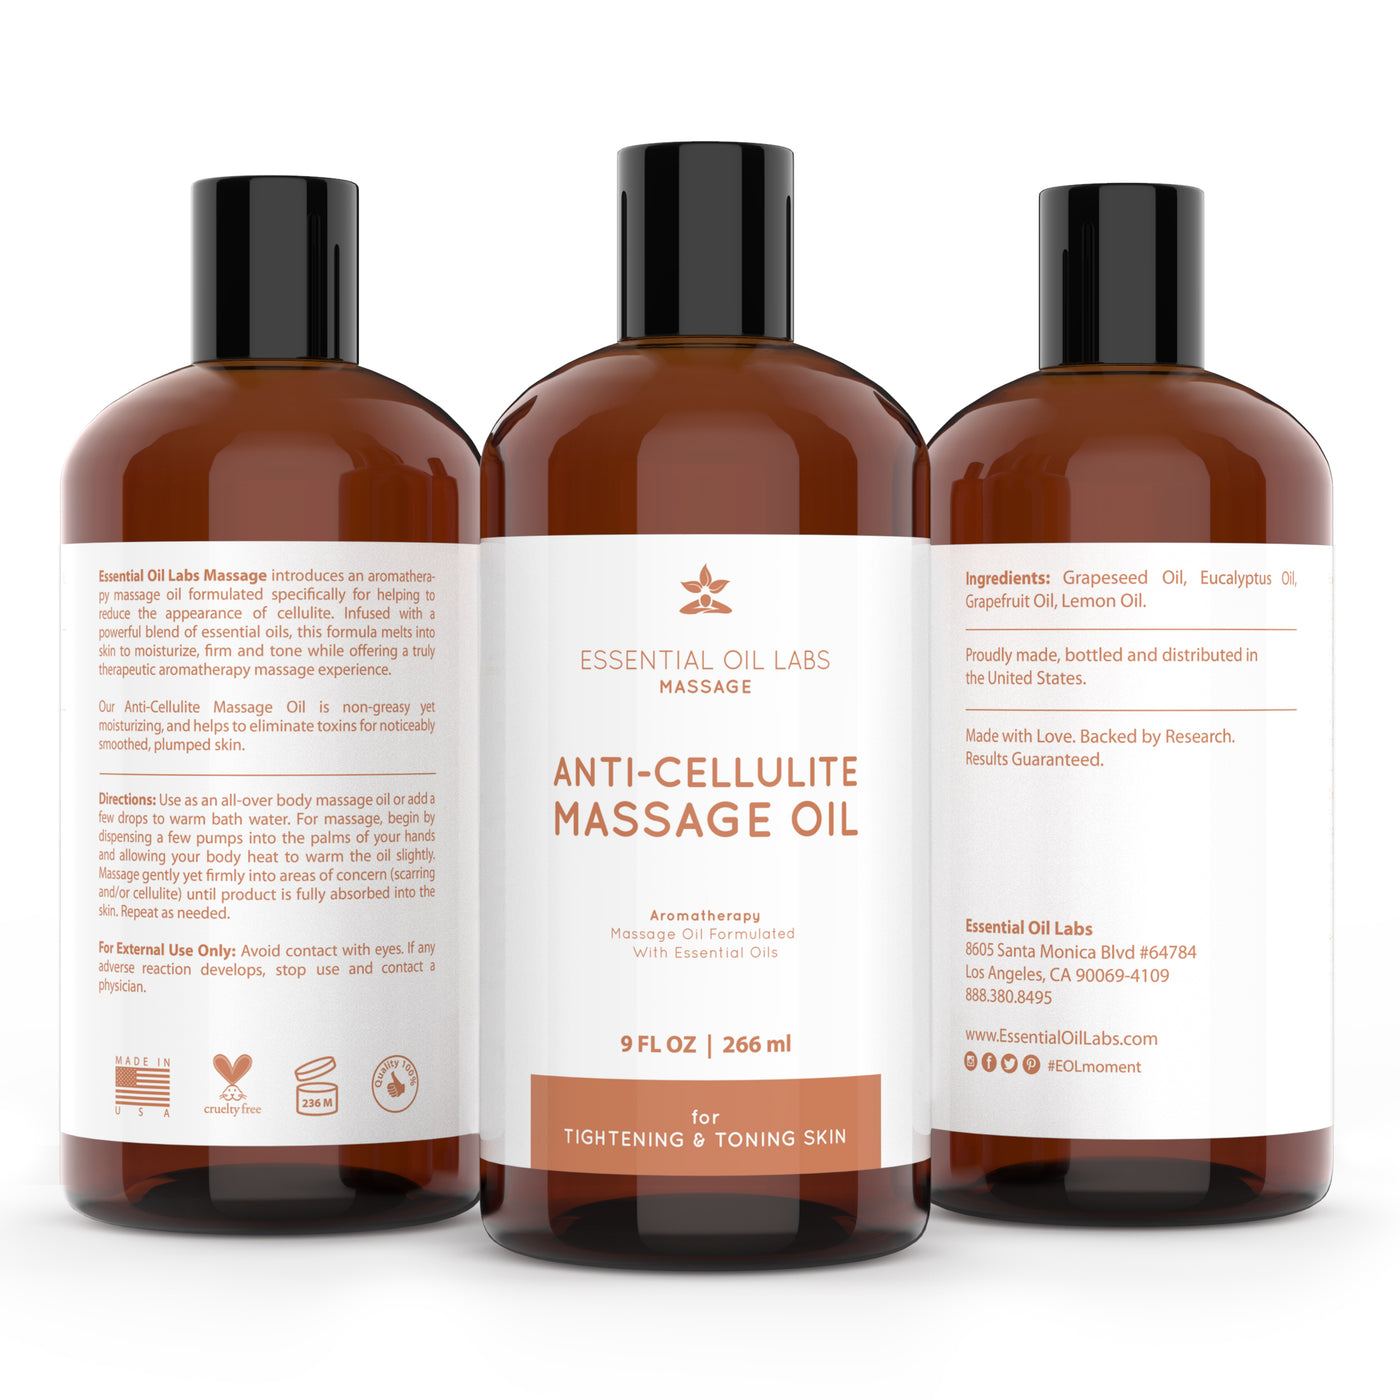 Anti-Cellulite Massage Oil, 9 oz.